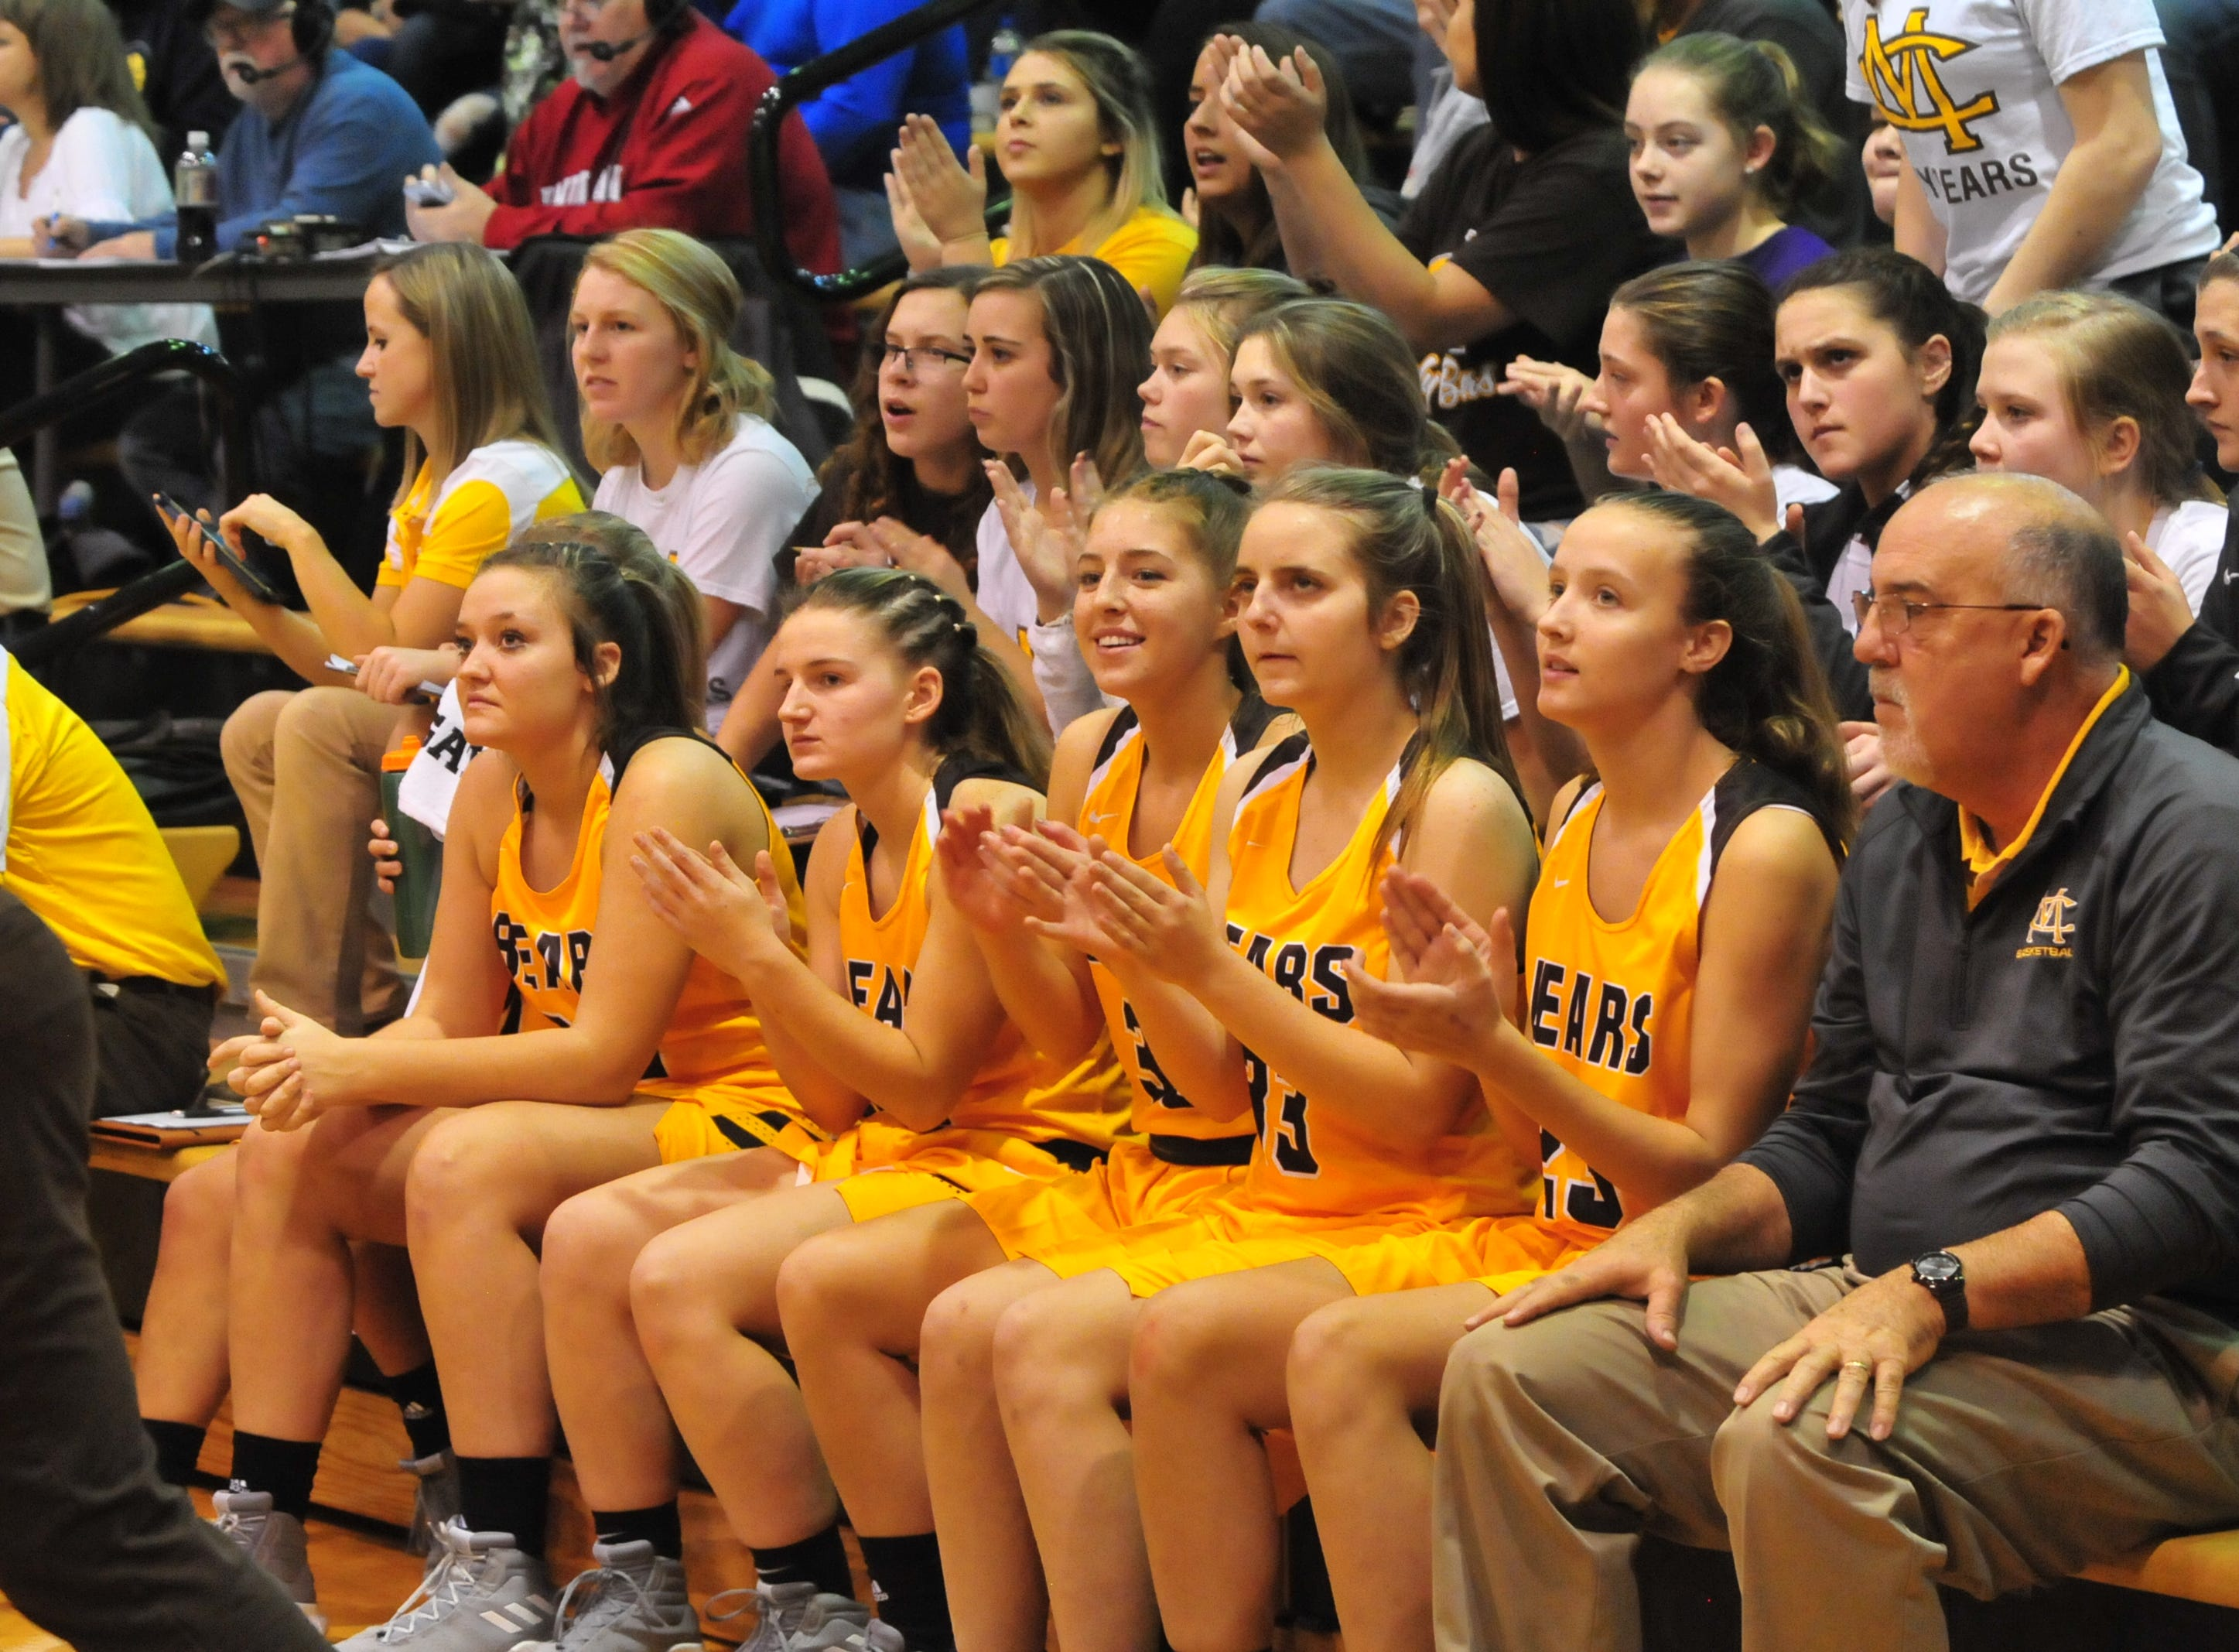 Monroe Central players on the bench during Winchester's 64-39 girls basketball win over Monroe Central Saturday, Dec. 1, 2018 at Winchester Fieldhouse.